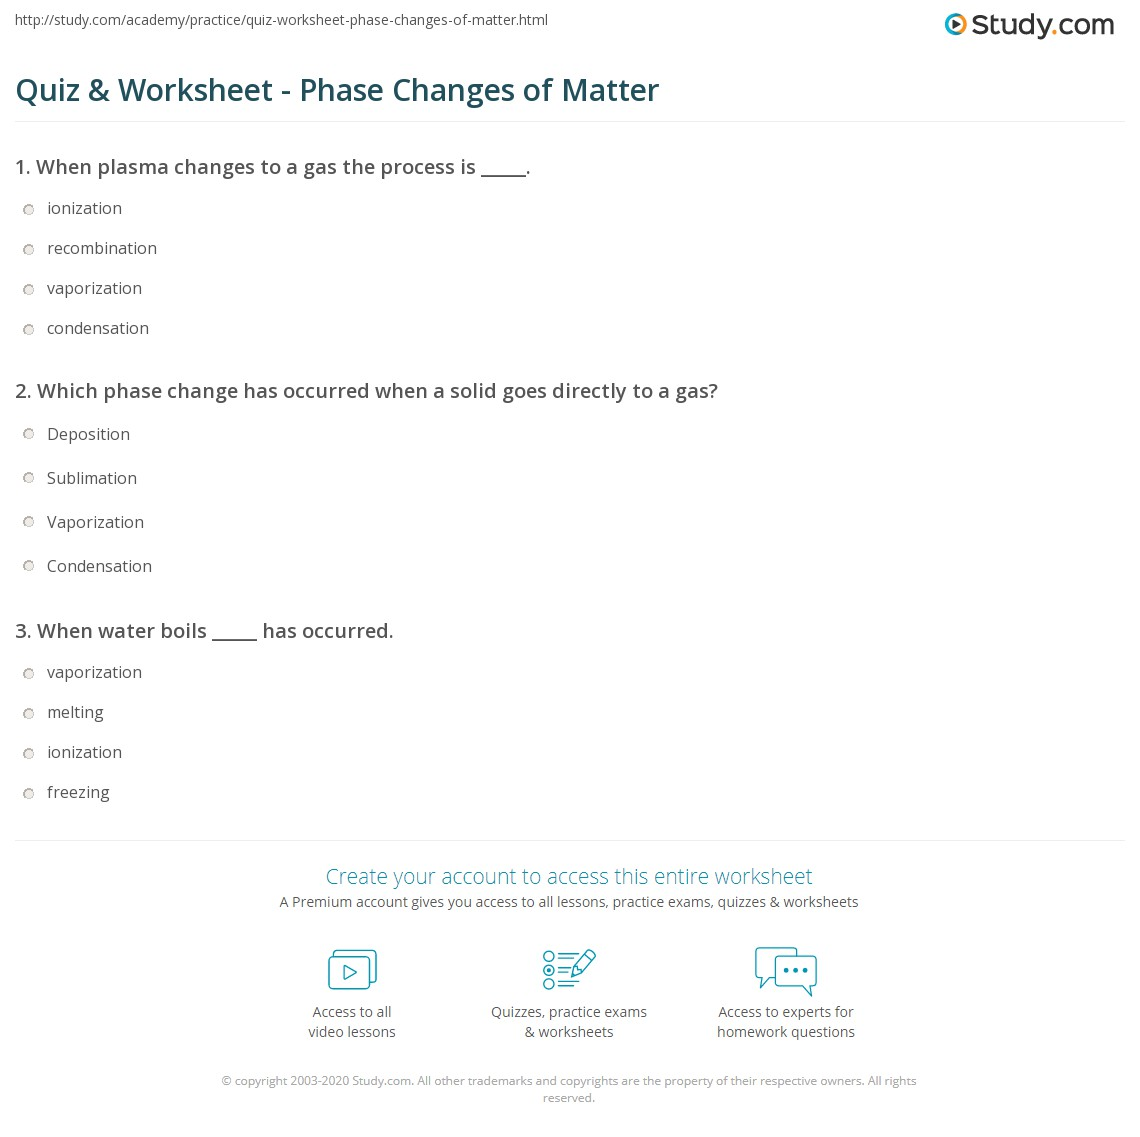 Proatmealus  Inspiring Quiz Amp Worksheet  Phase Changes Of Matter  Studycom With Remarkable Print Phase Changes Of Matter Types Amp Examples Worksheet With Adorable Simple Machines Printable Worksheets Also Days Of The Week Worksheets For Preschool In Addition Tener Worksheets And Vba Worksheet Copy As Well As Spelling Worksheets Grade  Additionally Prefix Suffix And Root Word Worksheets From Studycom With Proatmealus  Remarkable Quiz Amp Worksheet  Phase Changes Of Matter  Studycom With Adorable Print Phase Changes Of Matter Types Amp Examples Worksheet And Inspiring Simple Machines Printable Worksheets Also Days Of The Week Worksheets For Preschool In Addition Tener Worksheets From Studycom